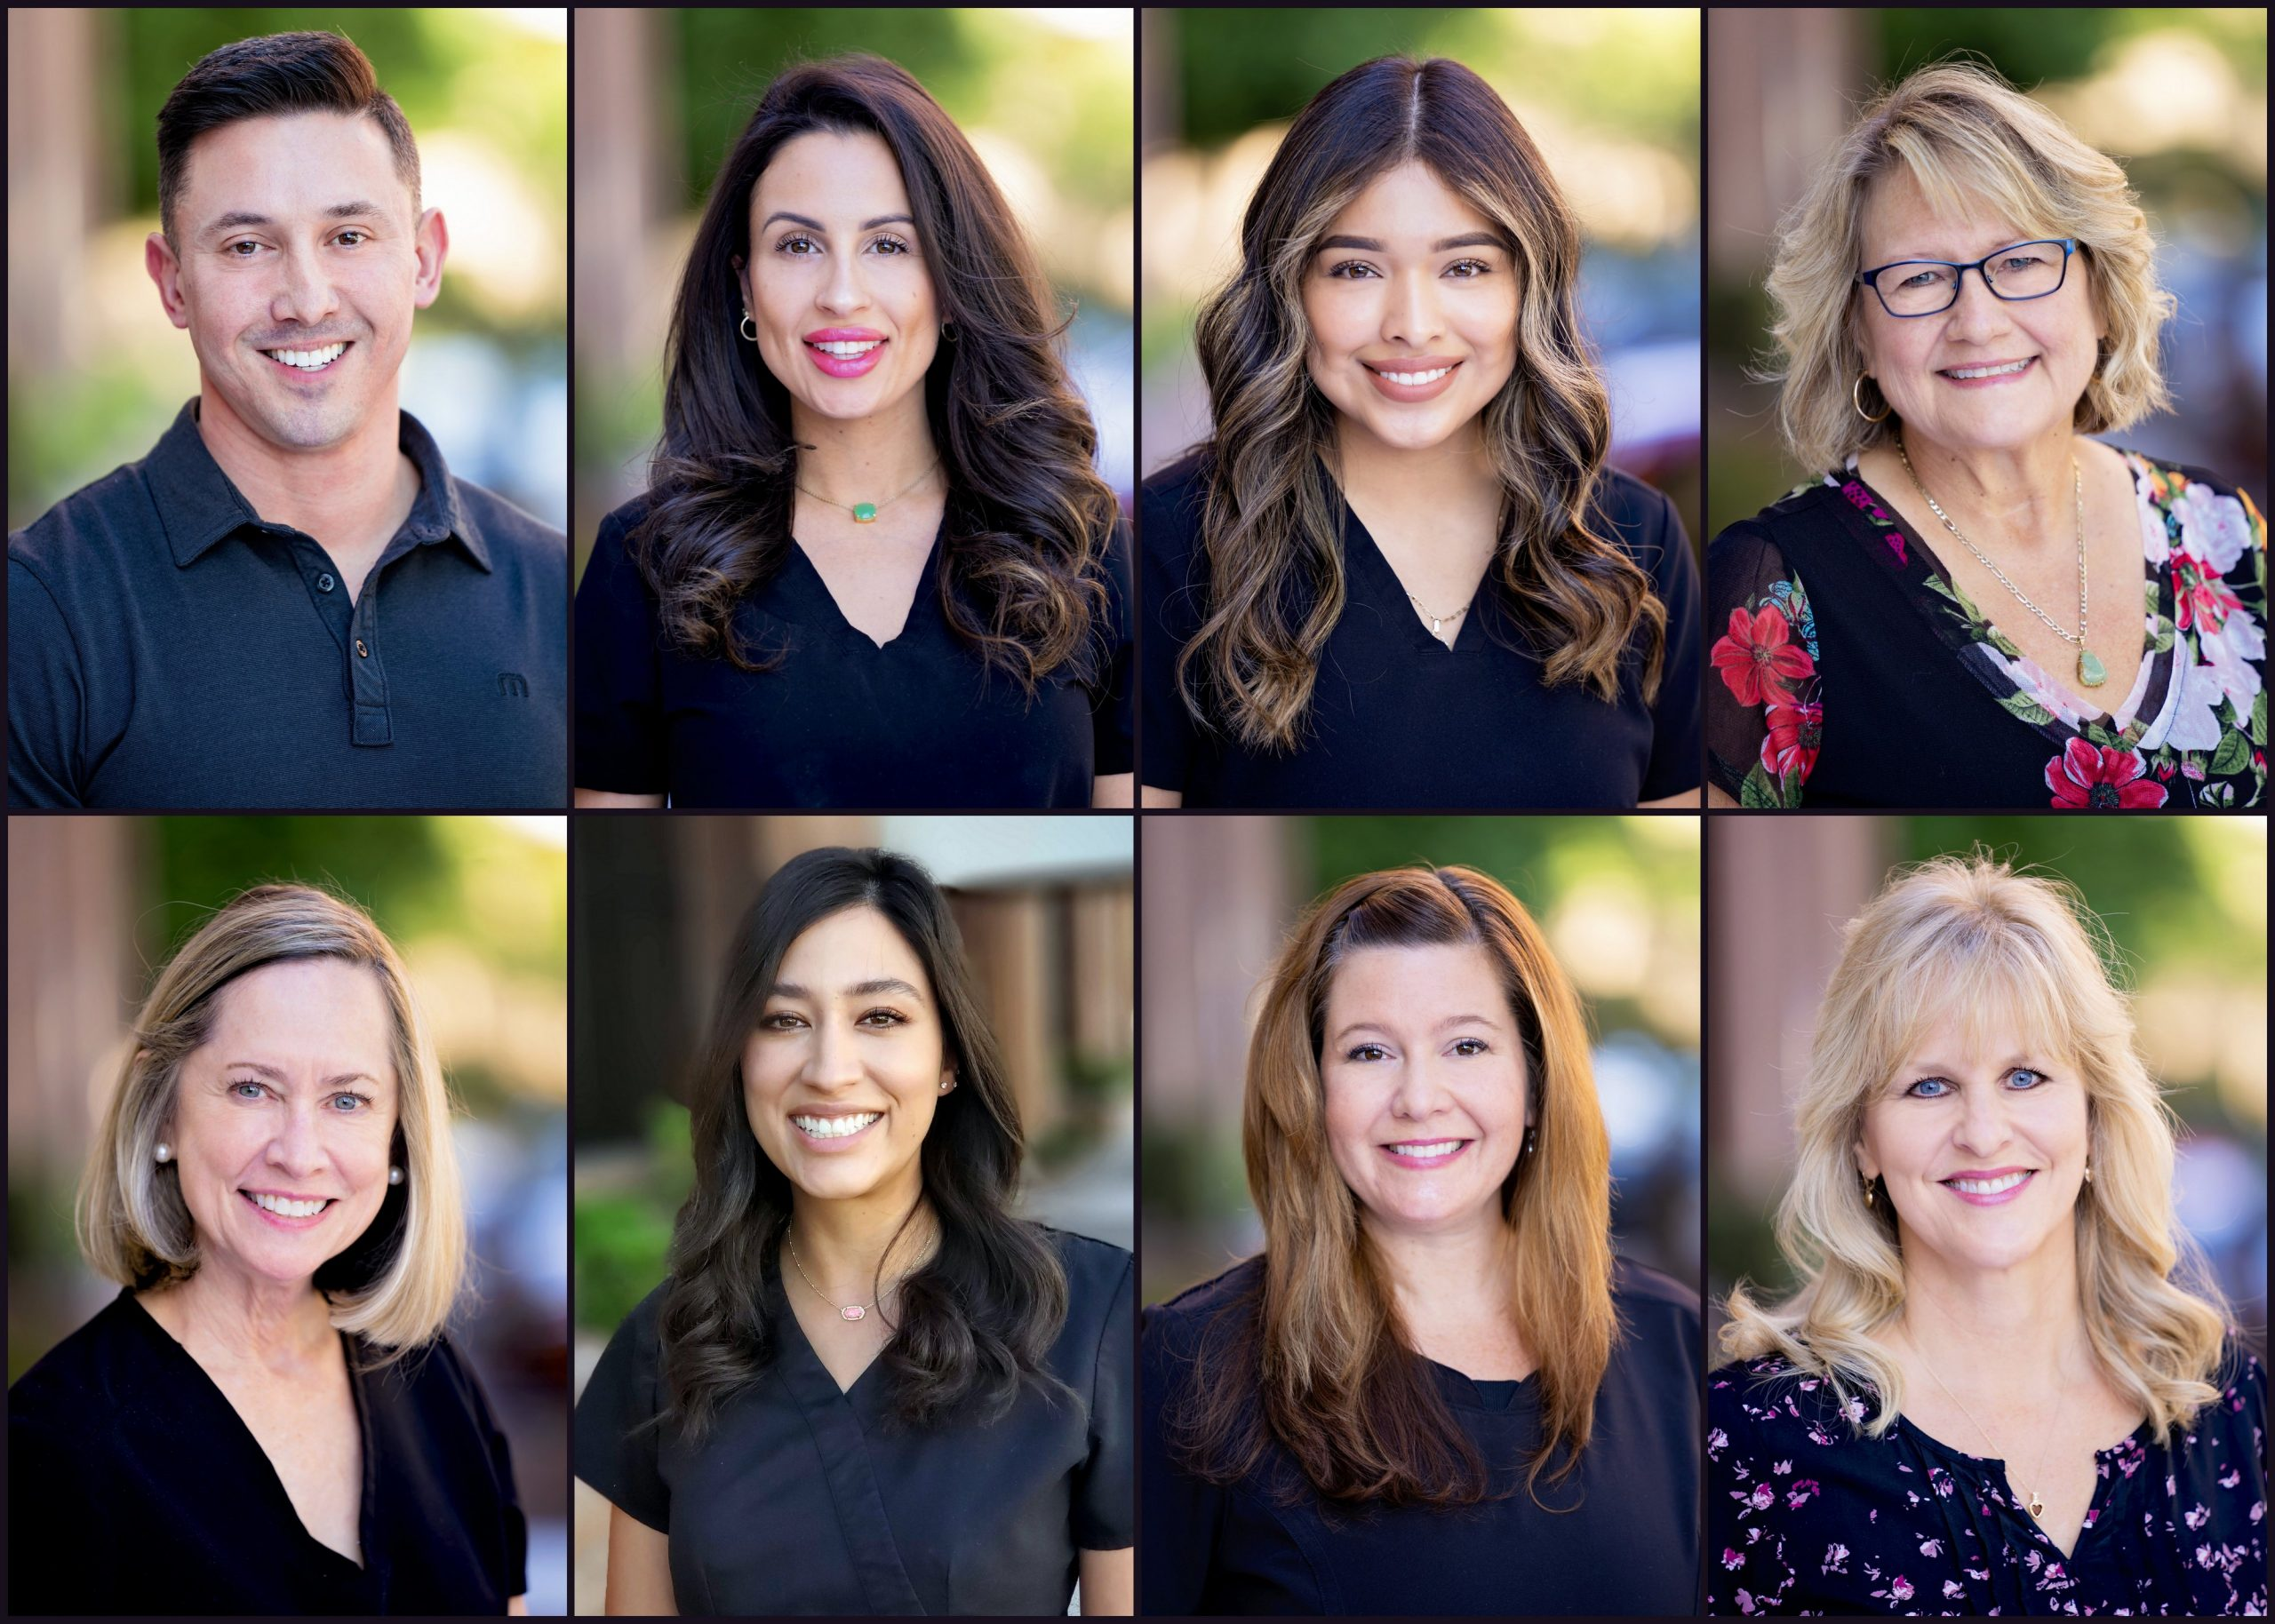 Employees of North Central Family Dentistry